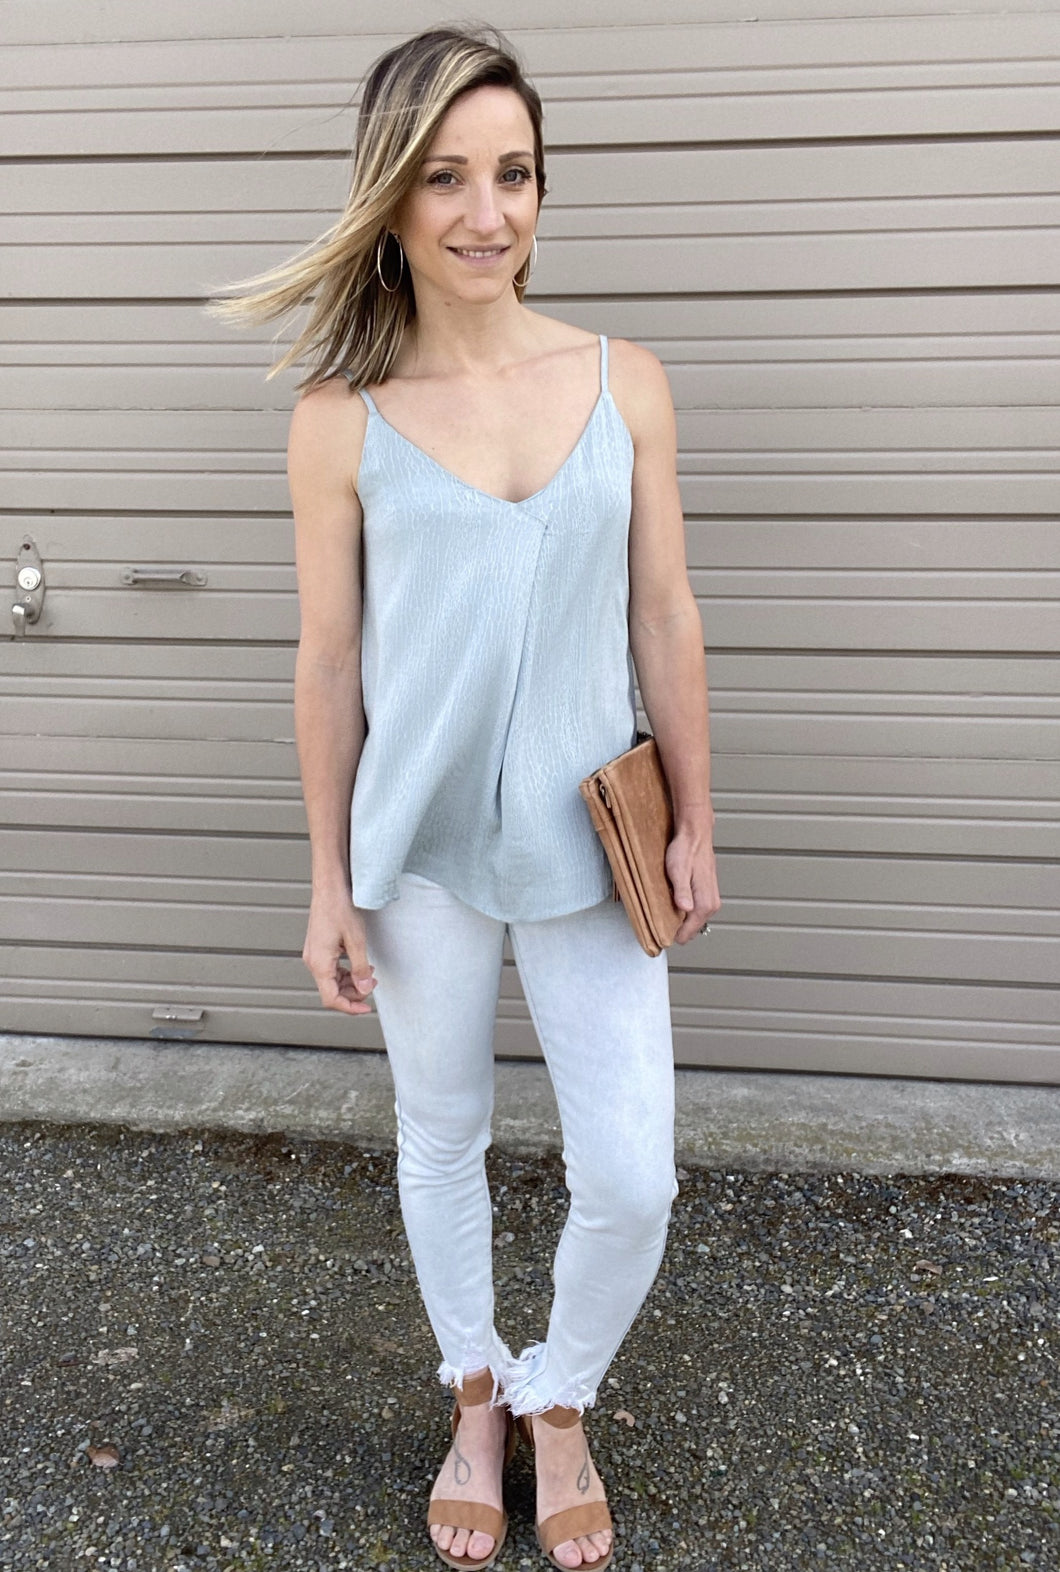 Simple Pleat Camisole - Smith & Vena Online Boutique